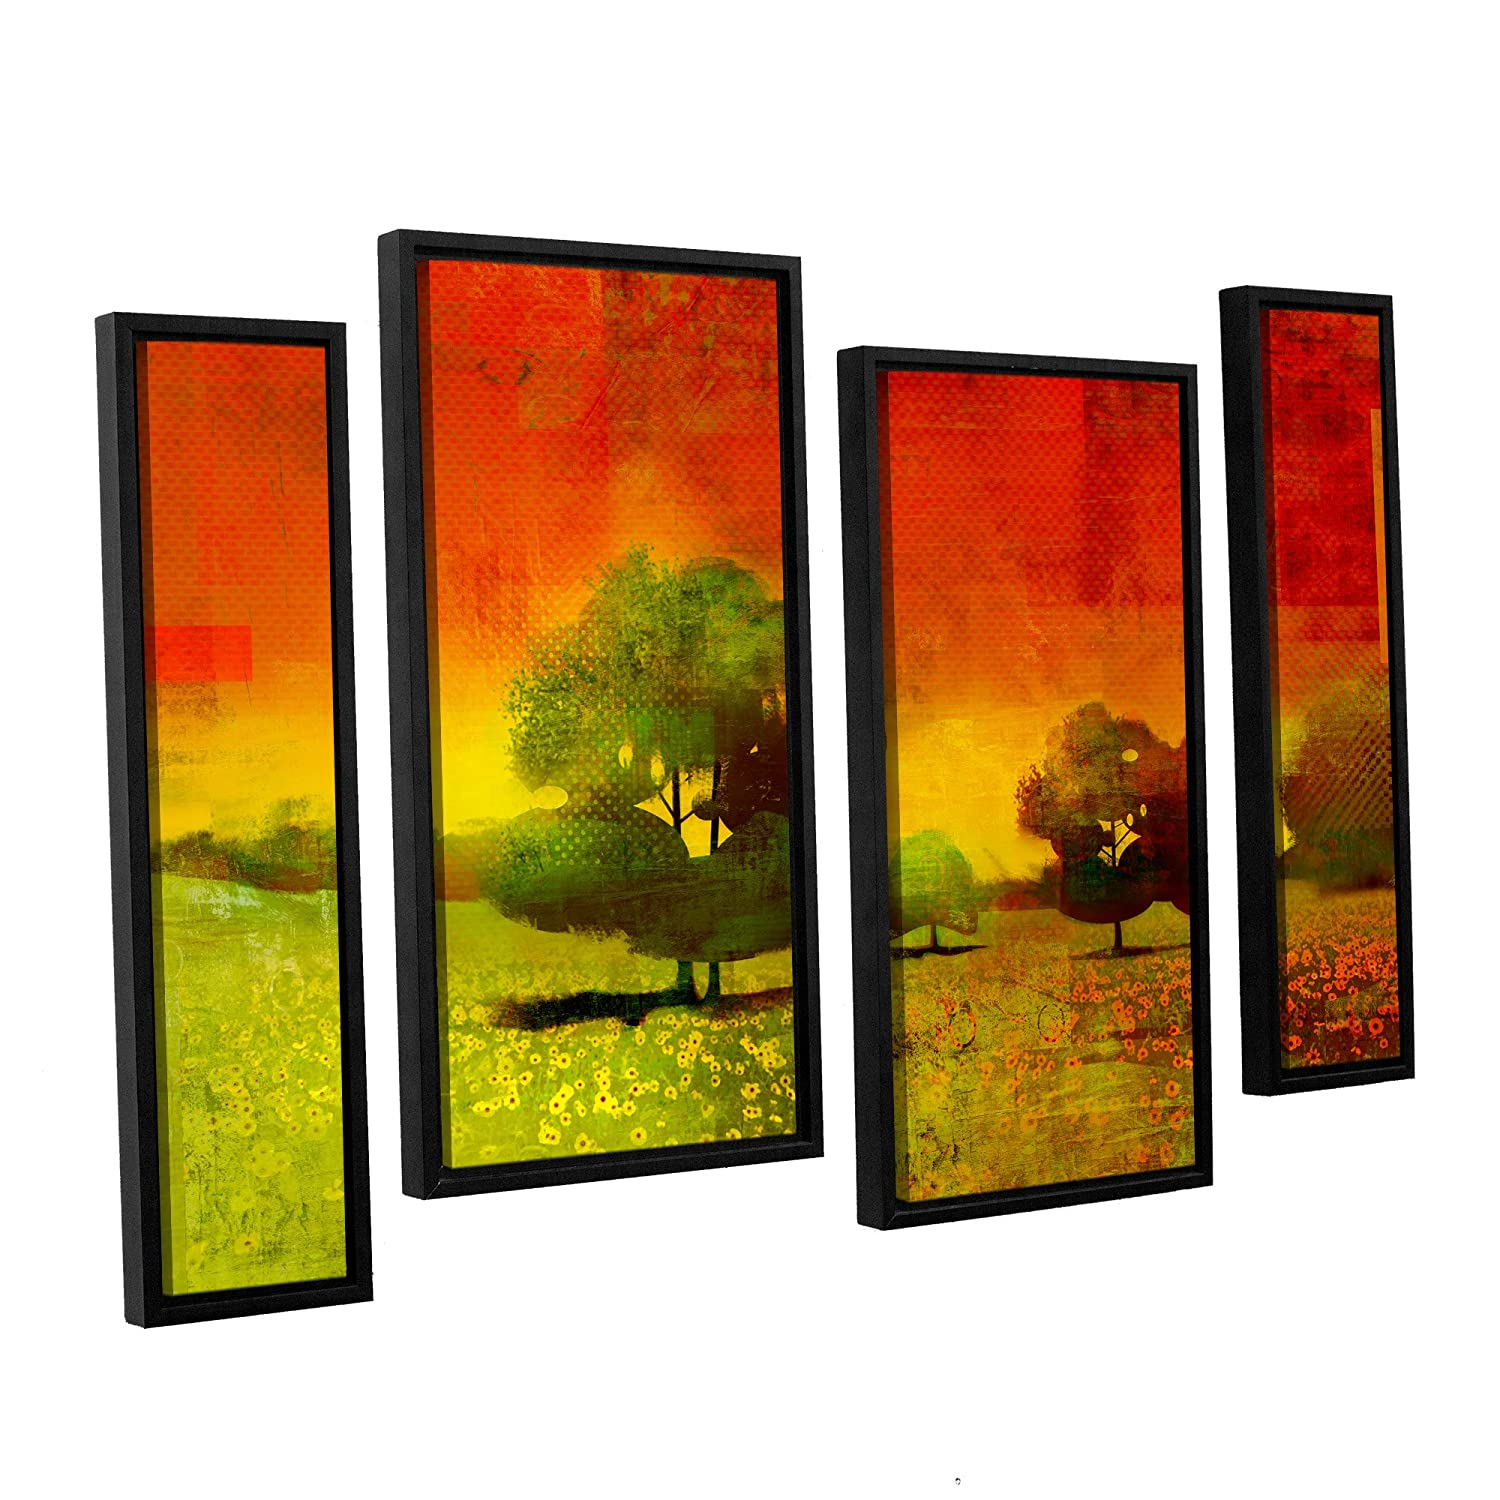 ArtWall 4 Piece Greg Simanson's Drenched Grace Floater Framed Canvas Staggered Set, 36 x 54